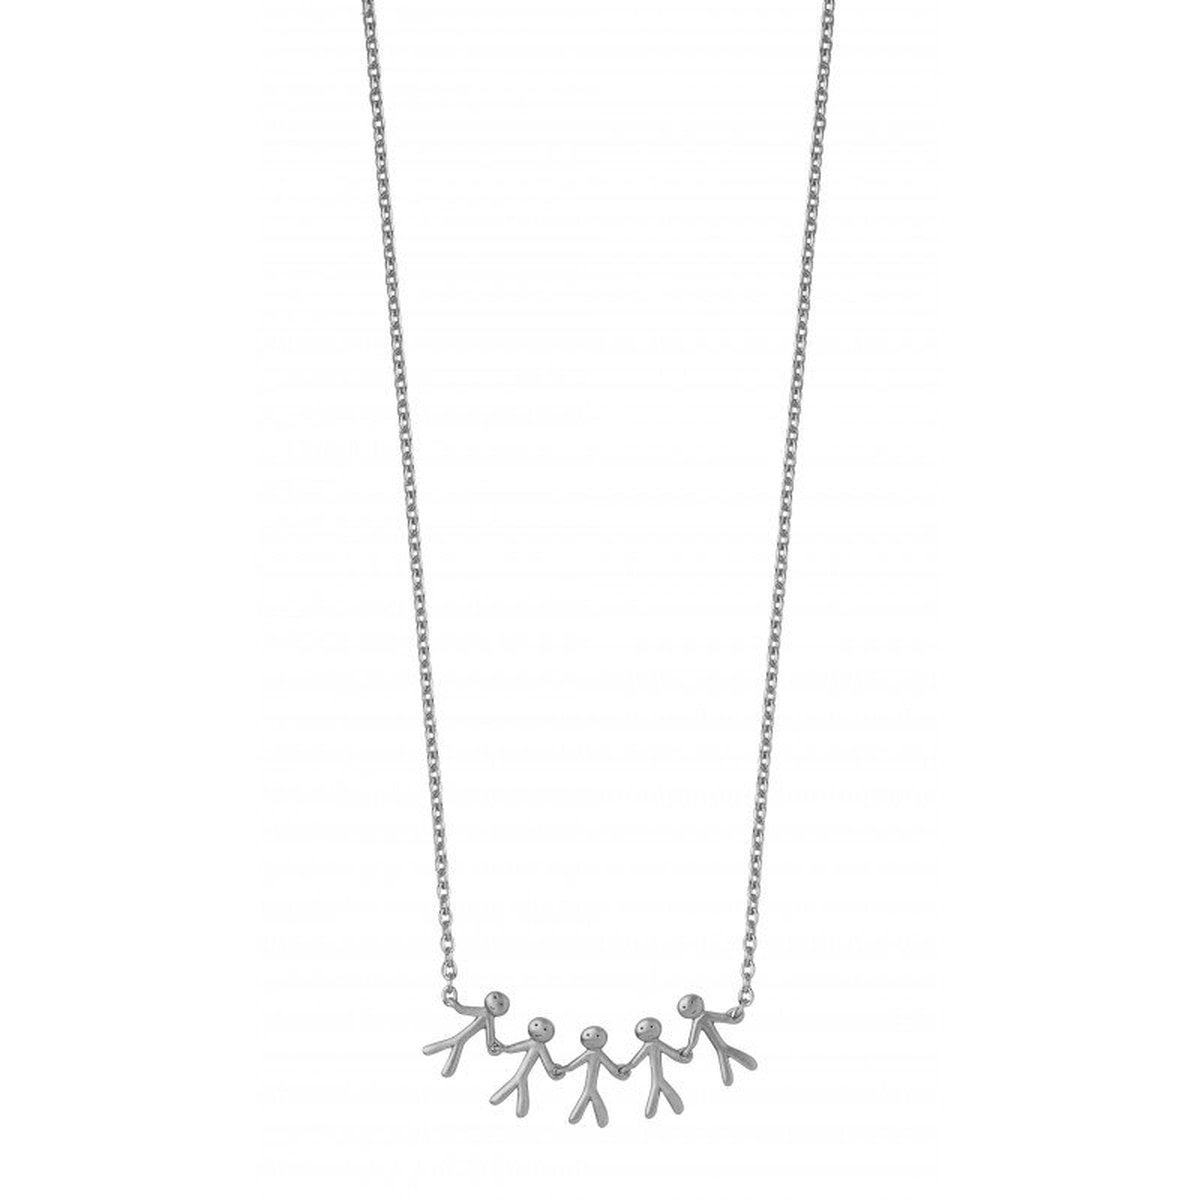 Together - Family necklace 5 - silver